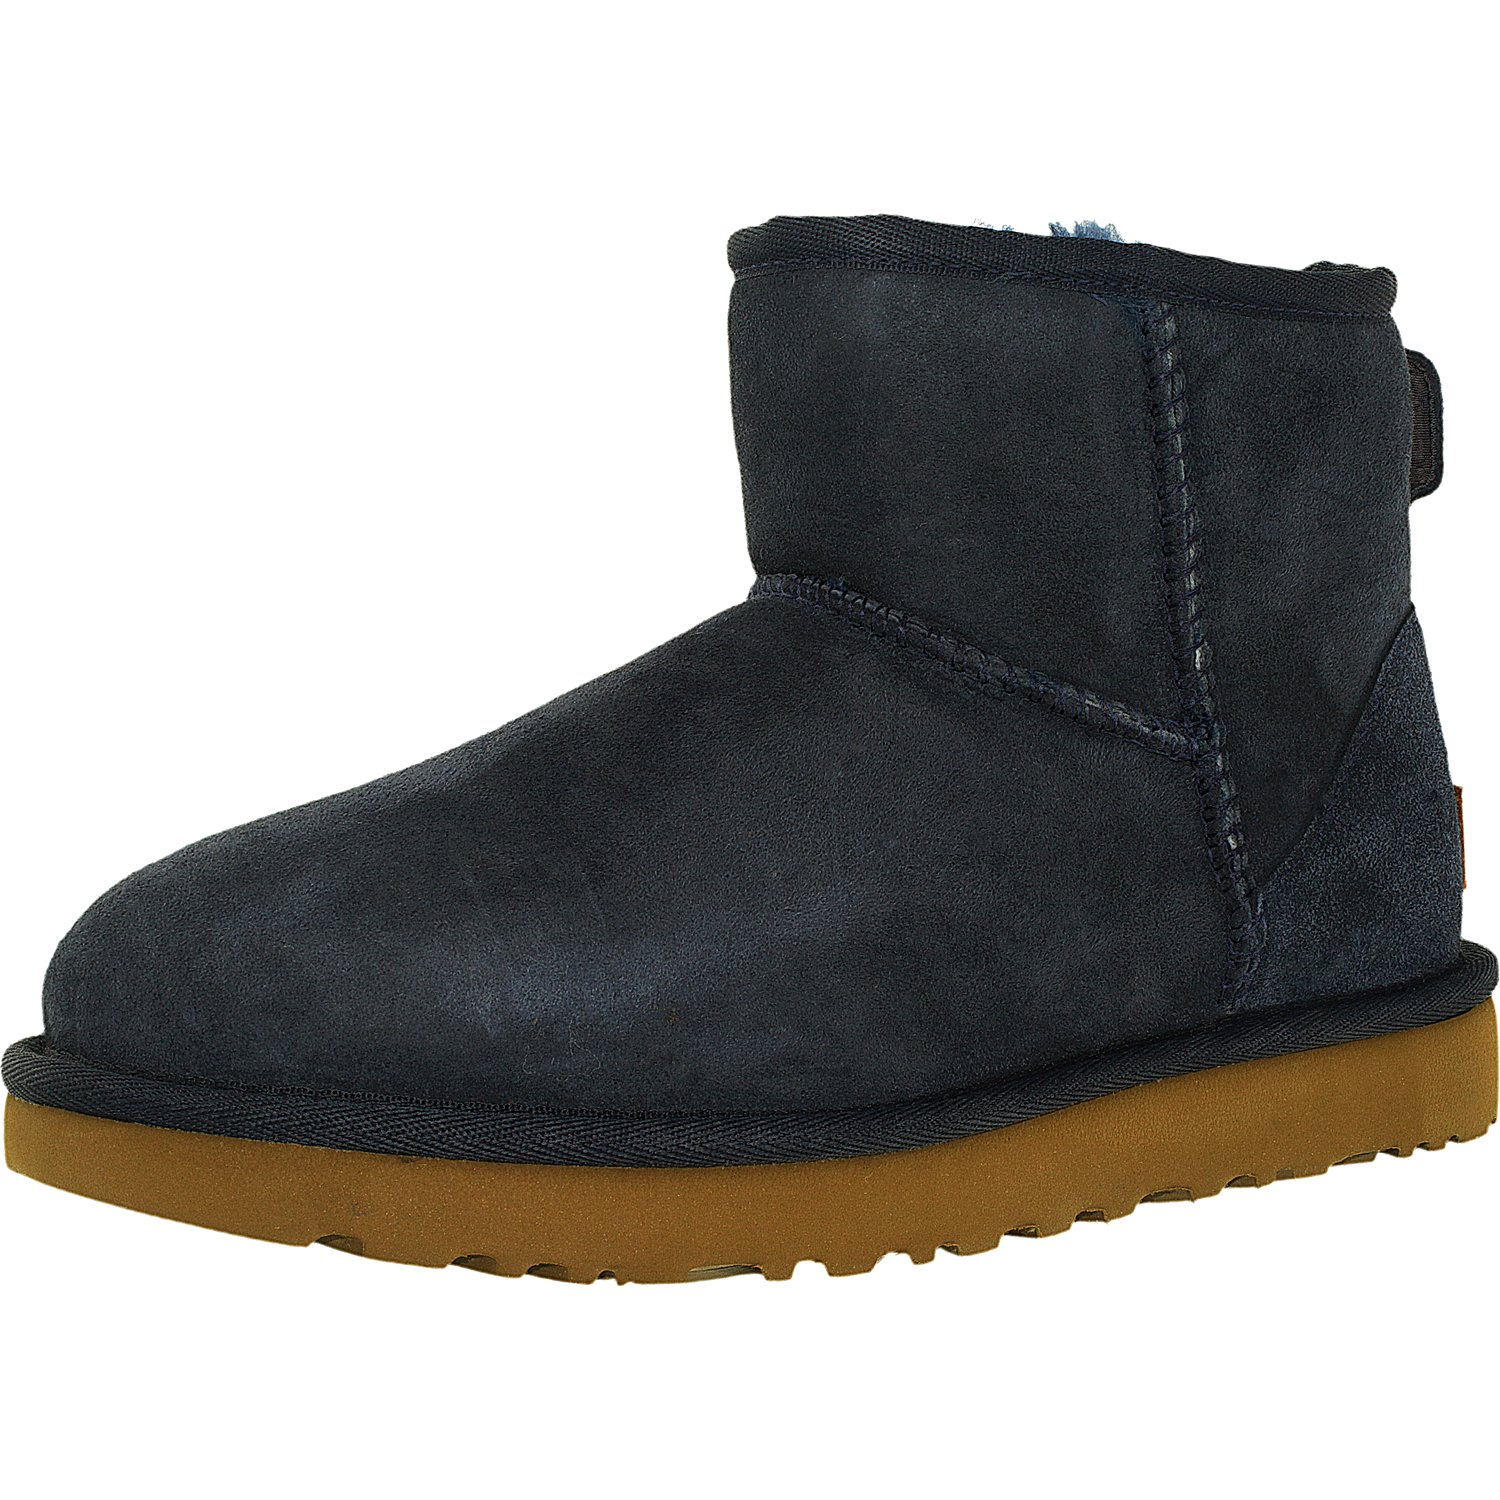 Ugg Women's Classic Mini II Leather Ankle-High Suede Boot 4